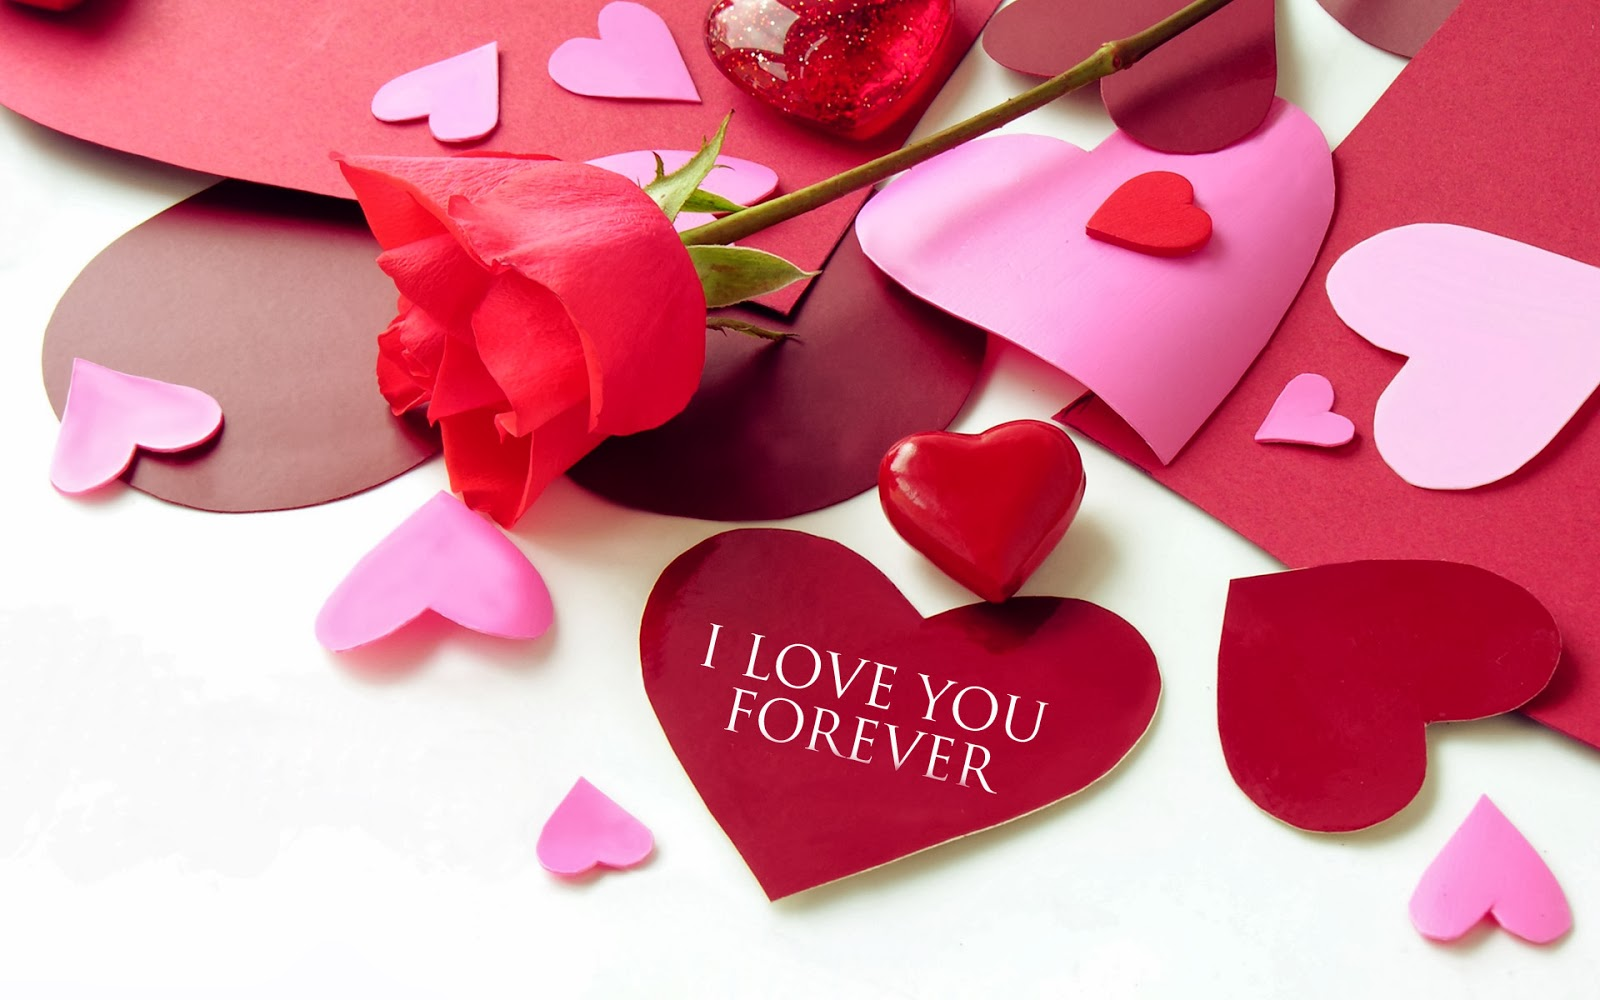 I-Love-You-Forever-card-for-lovers-free-download.jpg